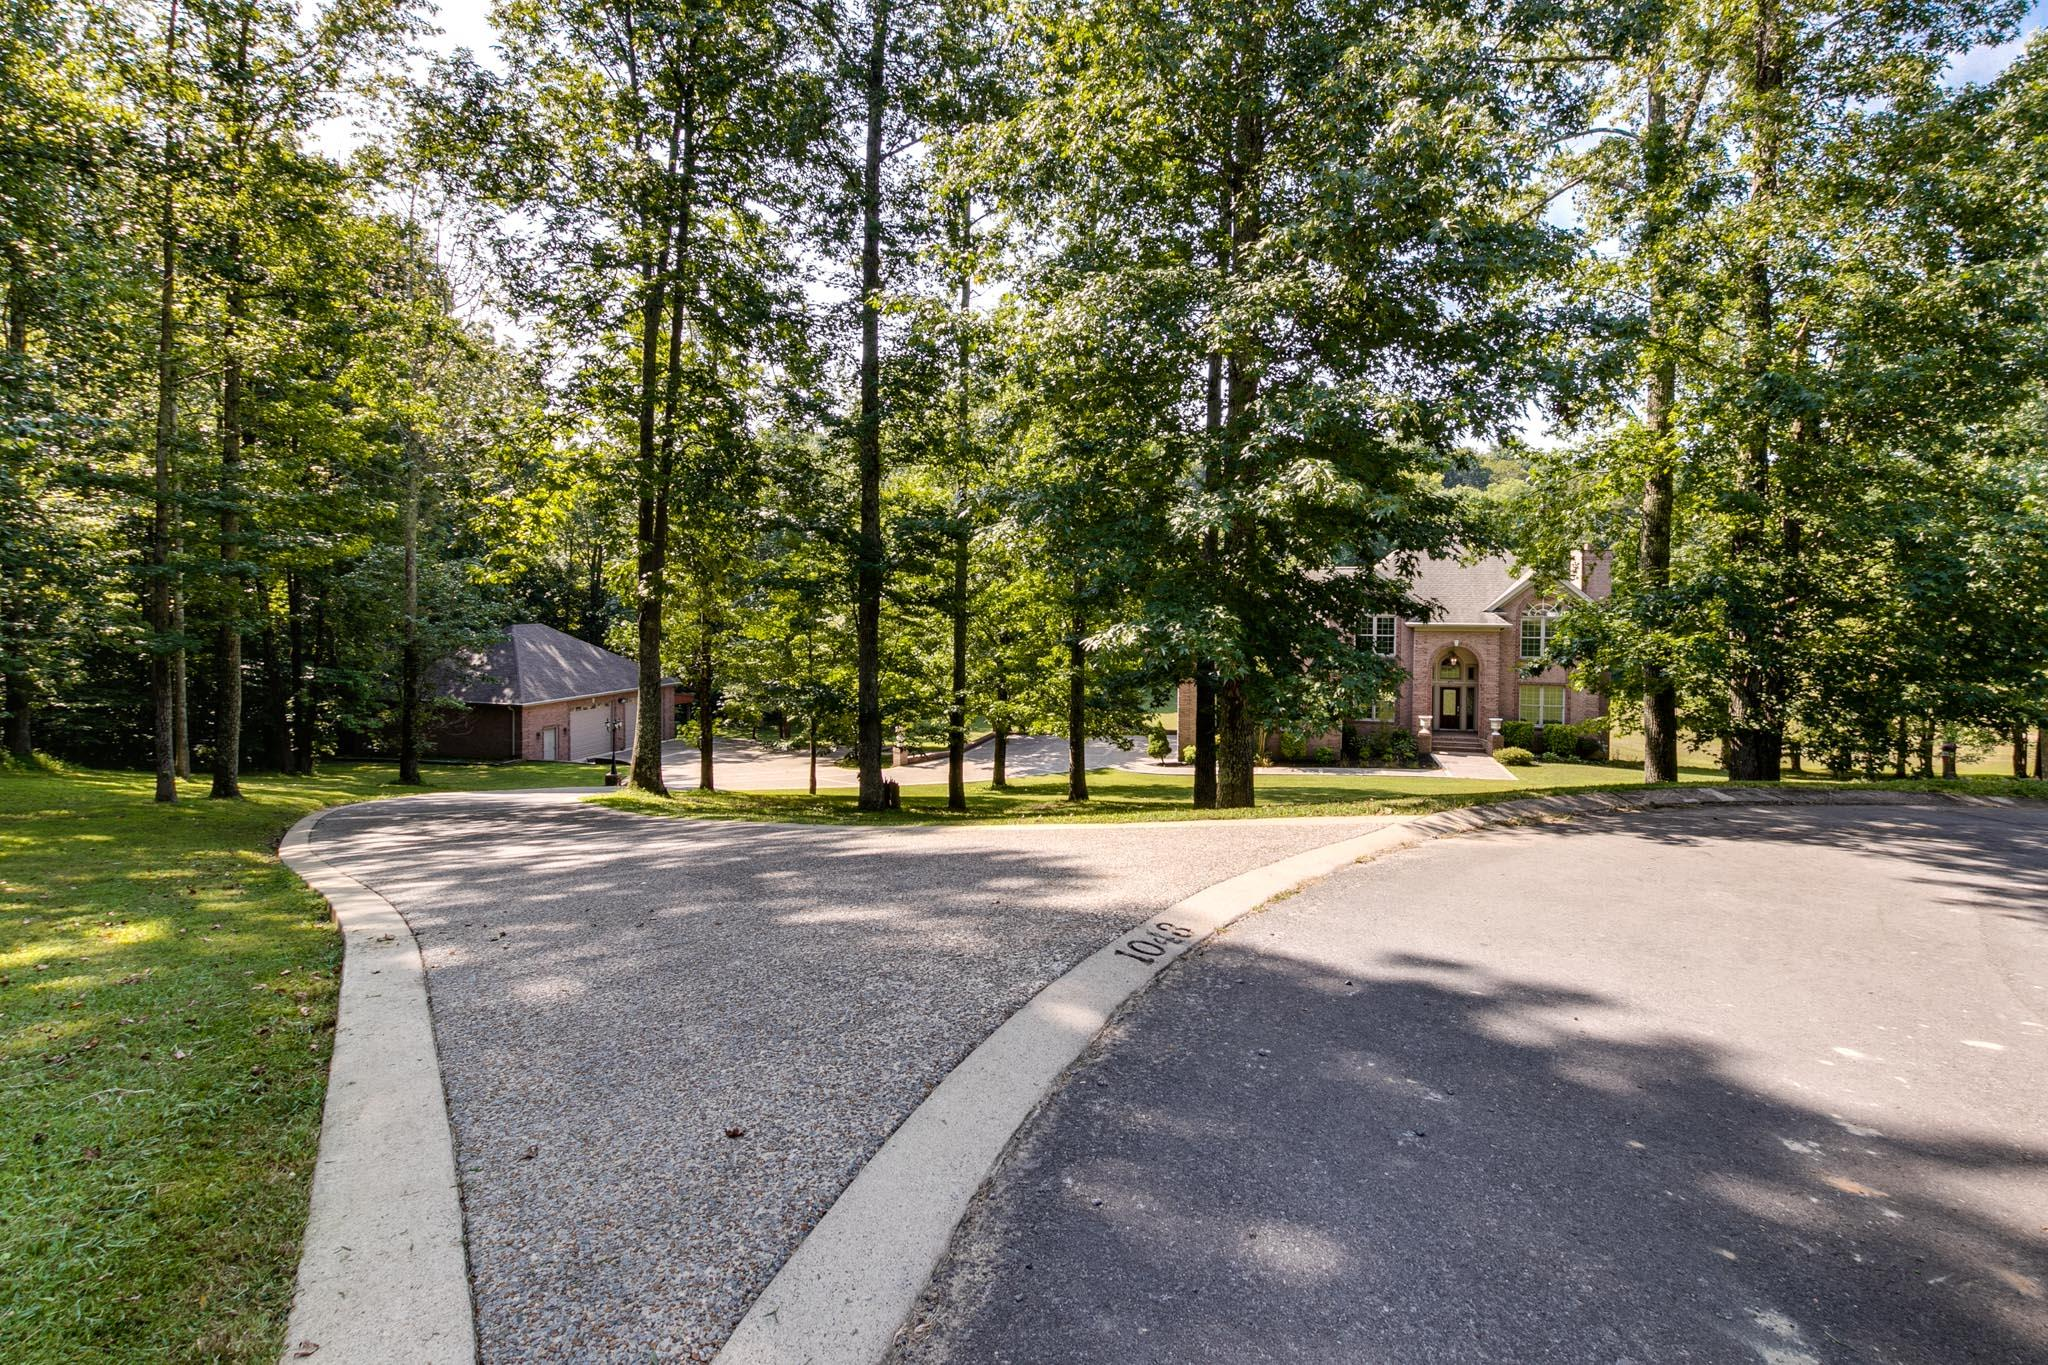 1043 Washington Dr, Cottontown, TN 37048 - Cottontown, TN real estate listing